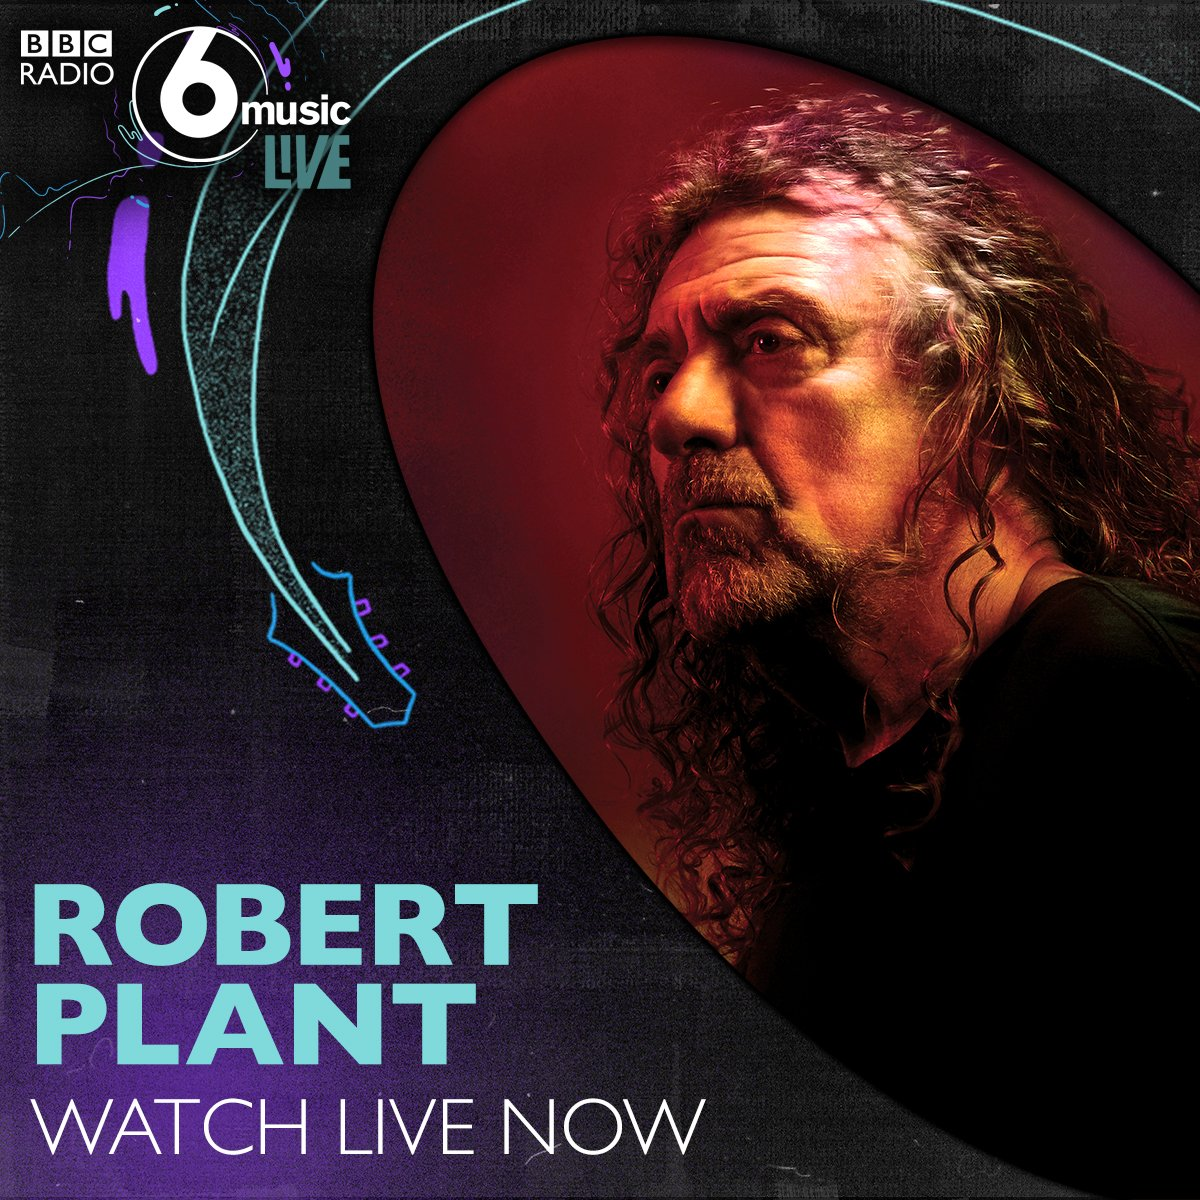 robert plant on twitter watch rp live at bbc6music 39 s 6musiclive now. Black Bedroom Furniture Sets. Home Design Ideas